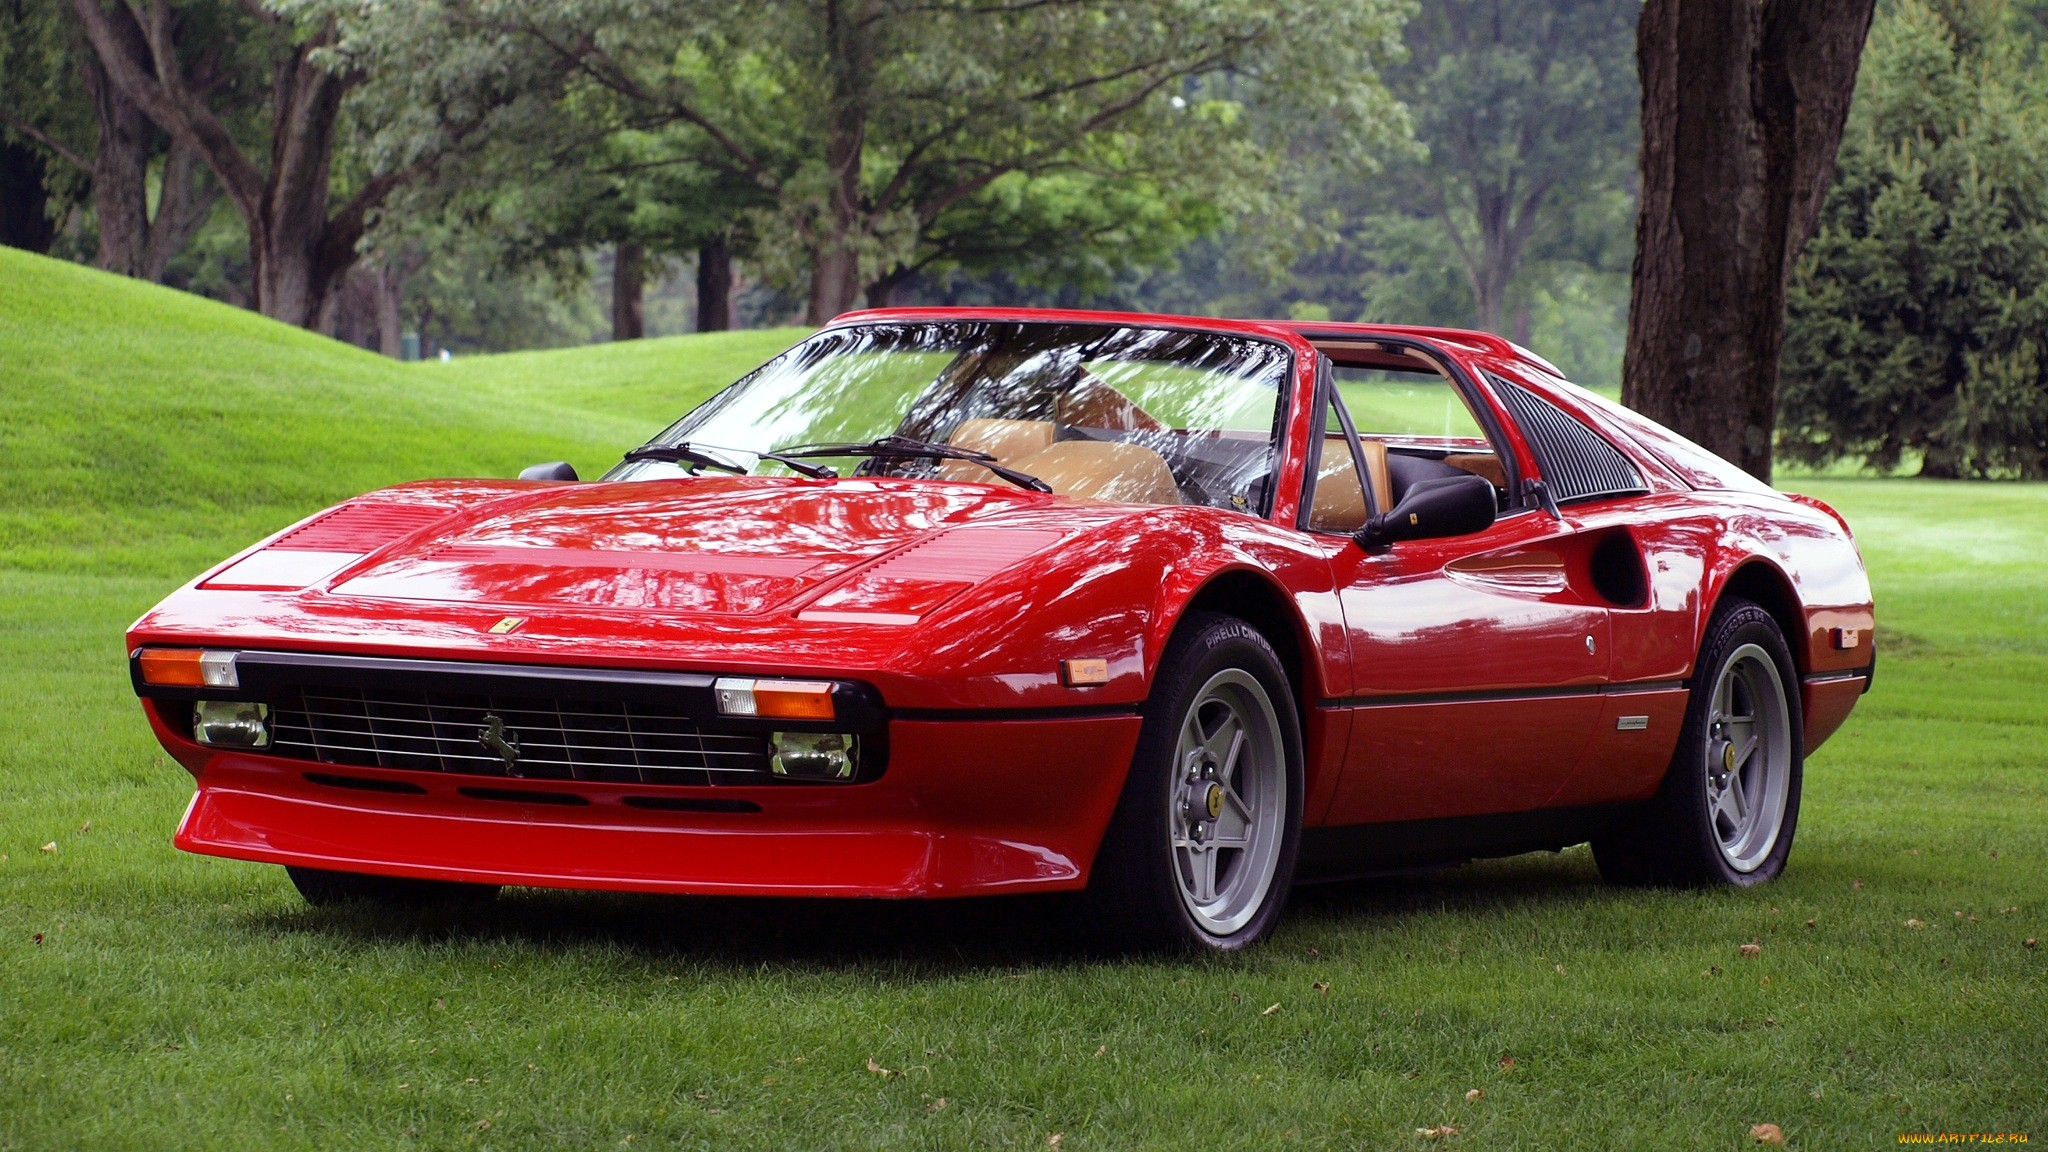 Ferrari 308 supercar red grass